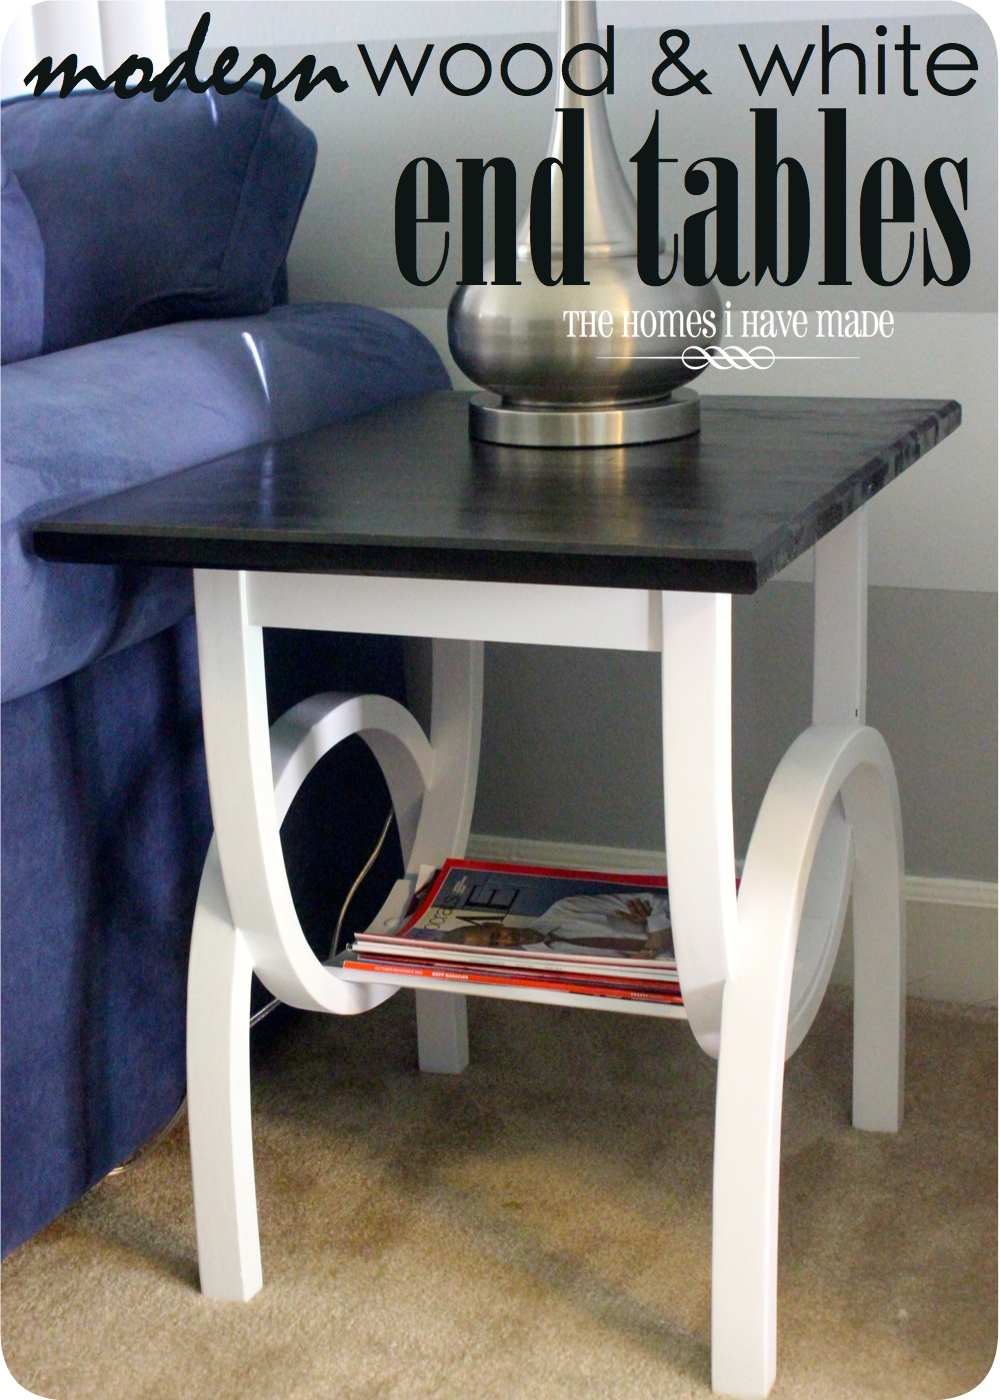 You Might Remember That Right Before We Moved, I Scored These End Table  Bases From One Of Those U201cEverything Must Gou201d Closeout Furniture Stores.